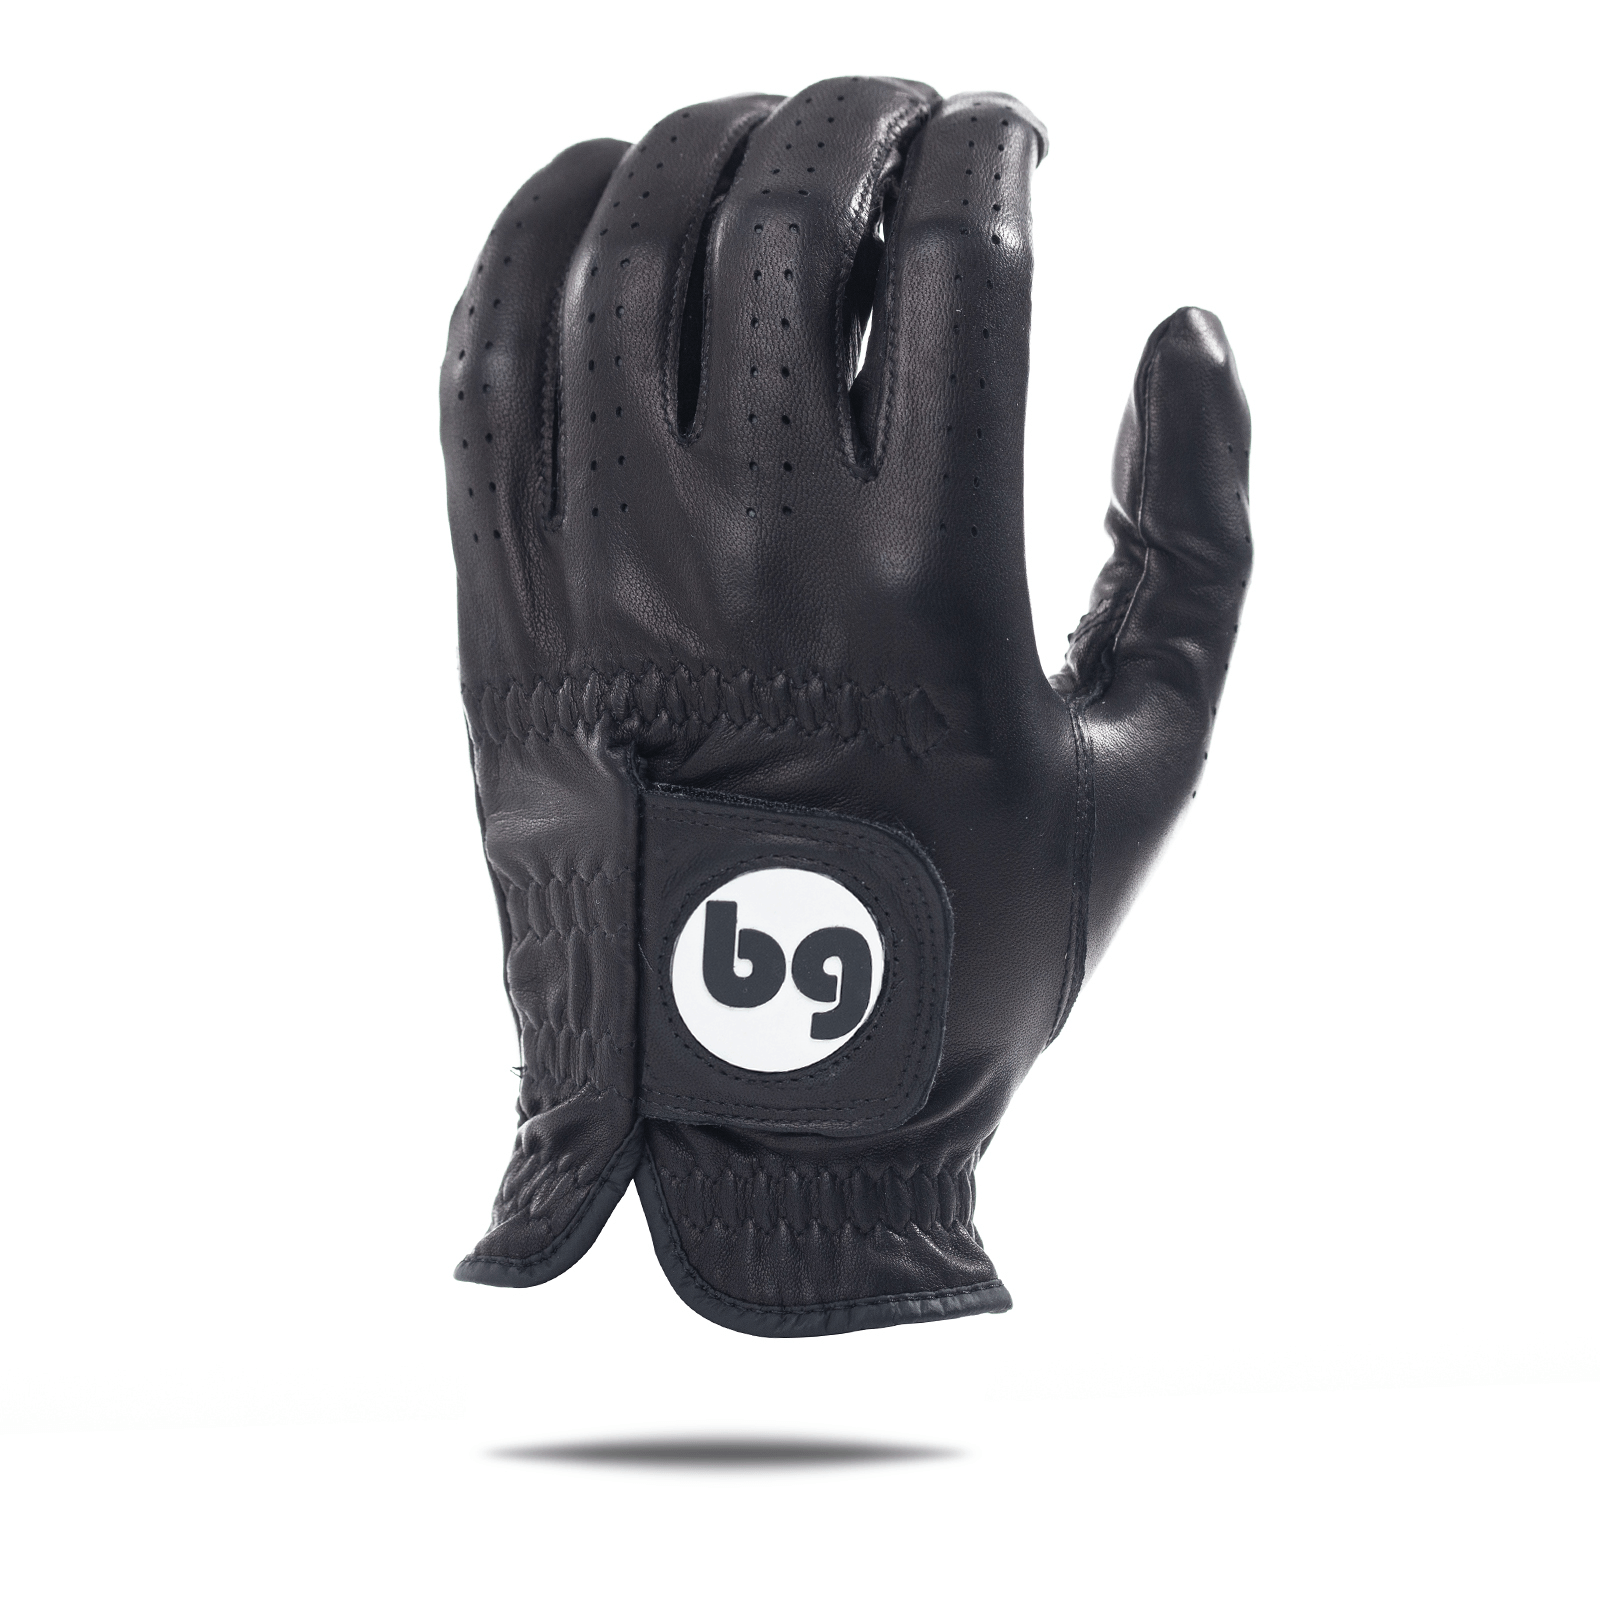 Black Elite Tour Golf Glove